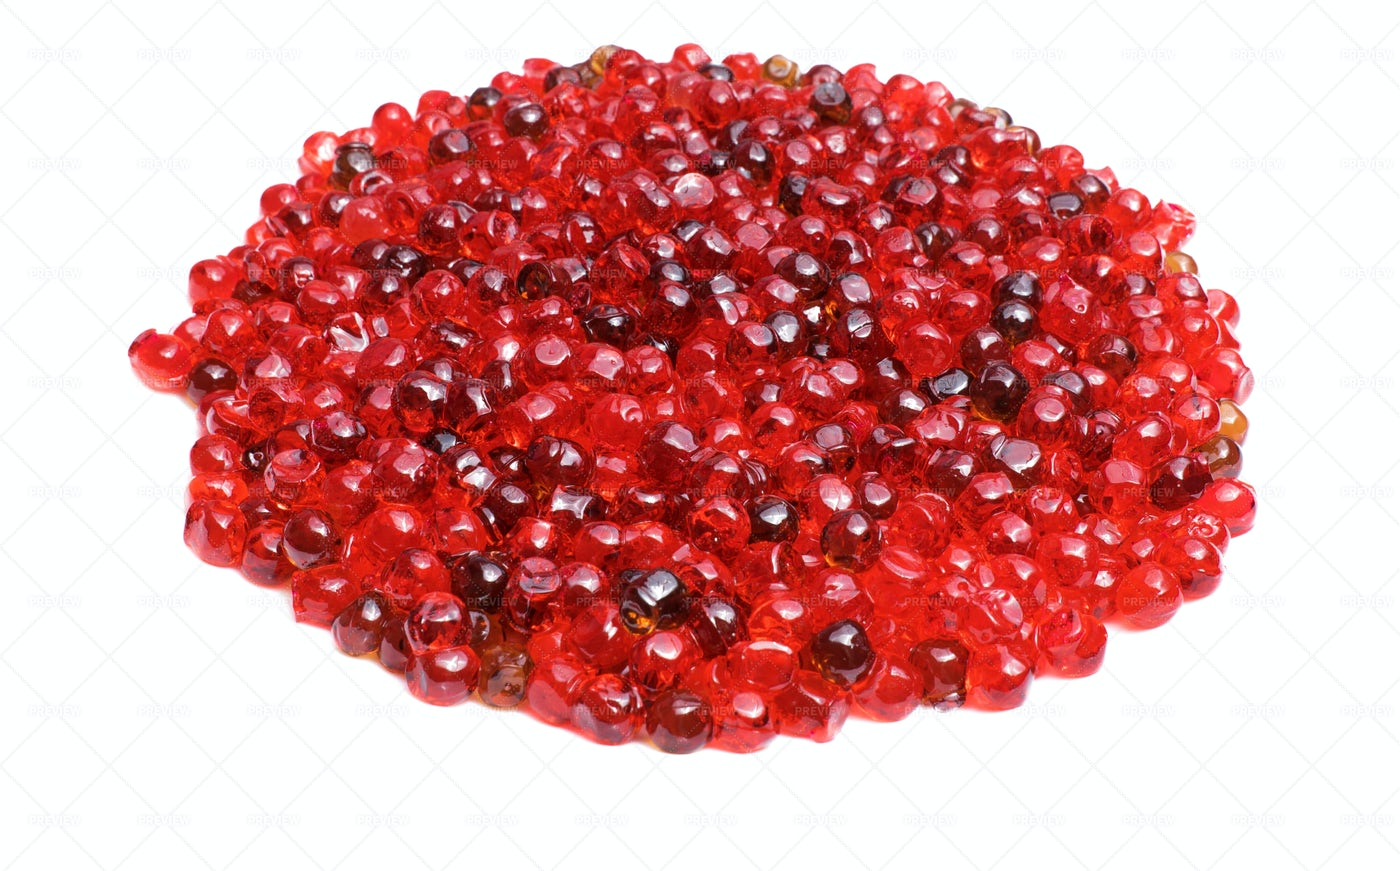 Red Caviar On A White Background: Stock Photos